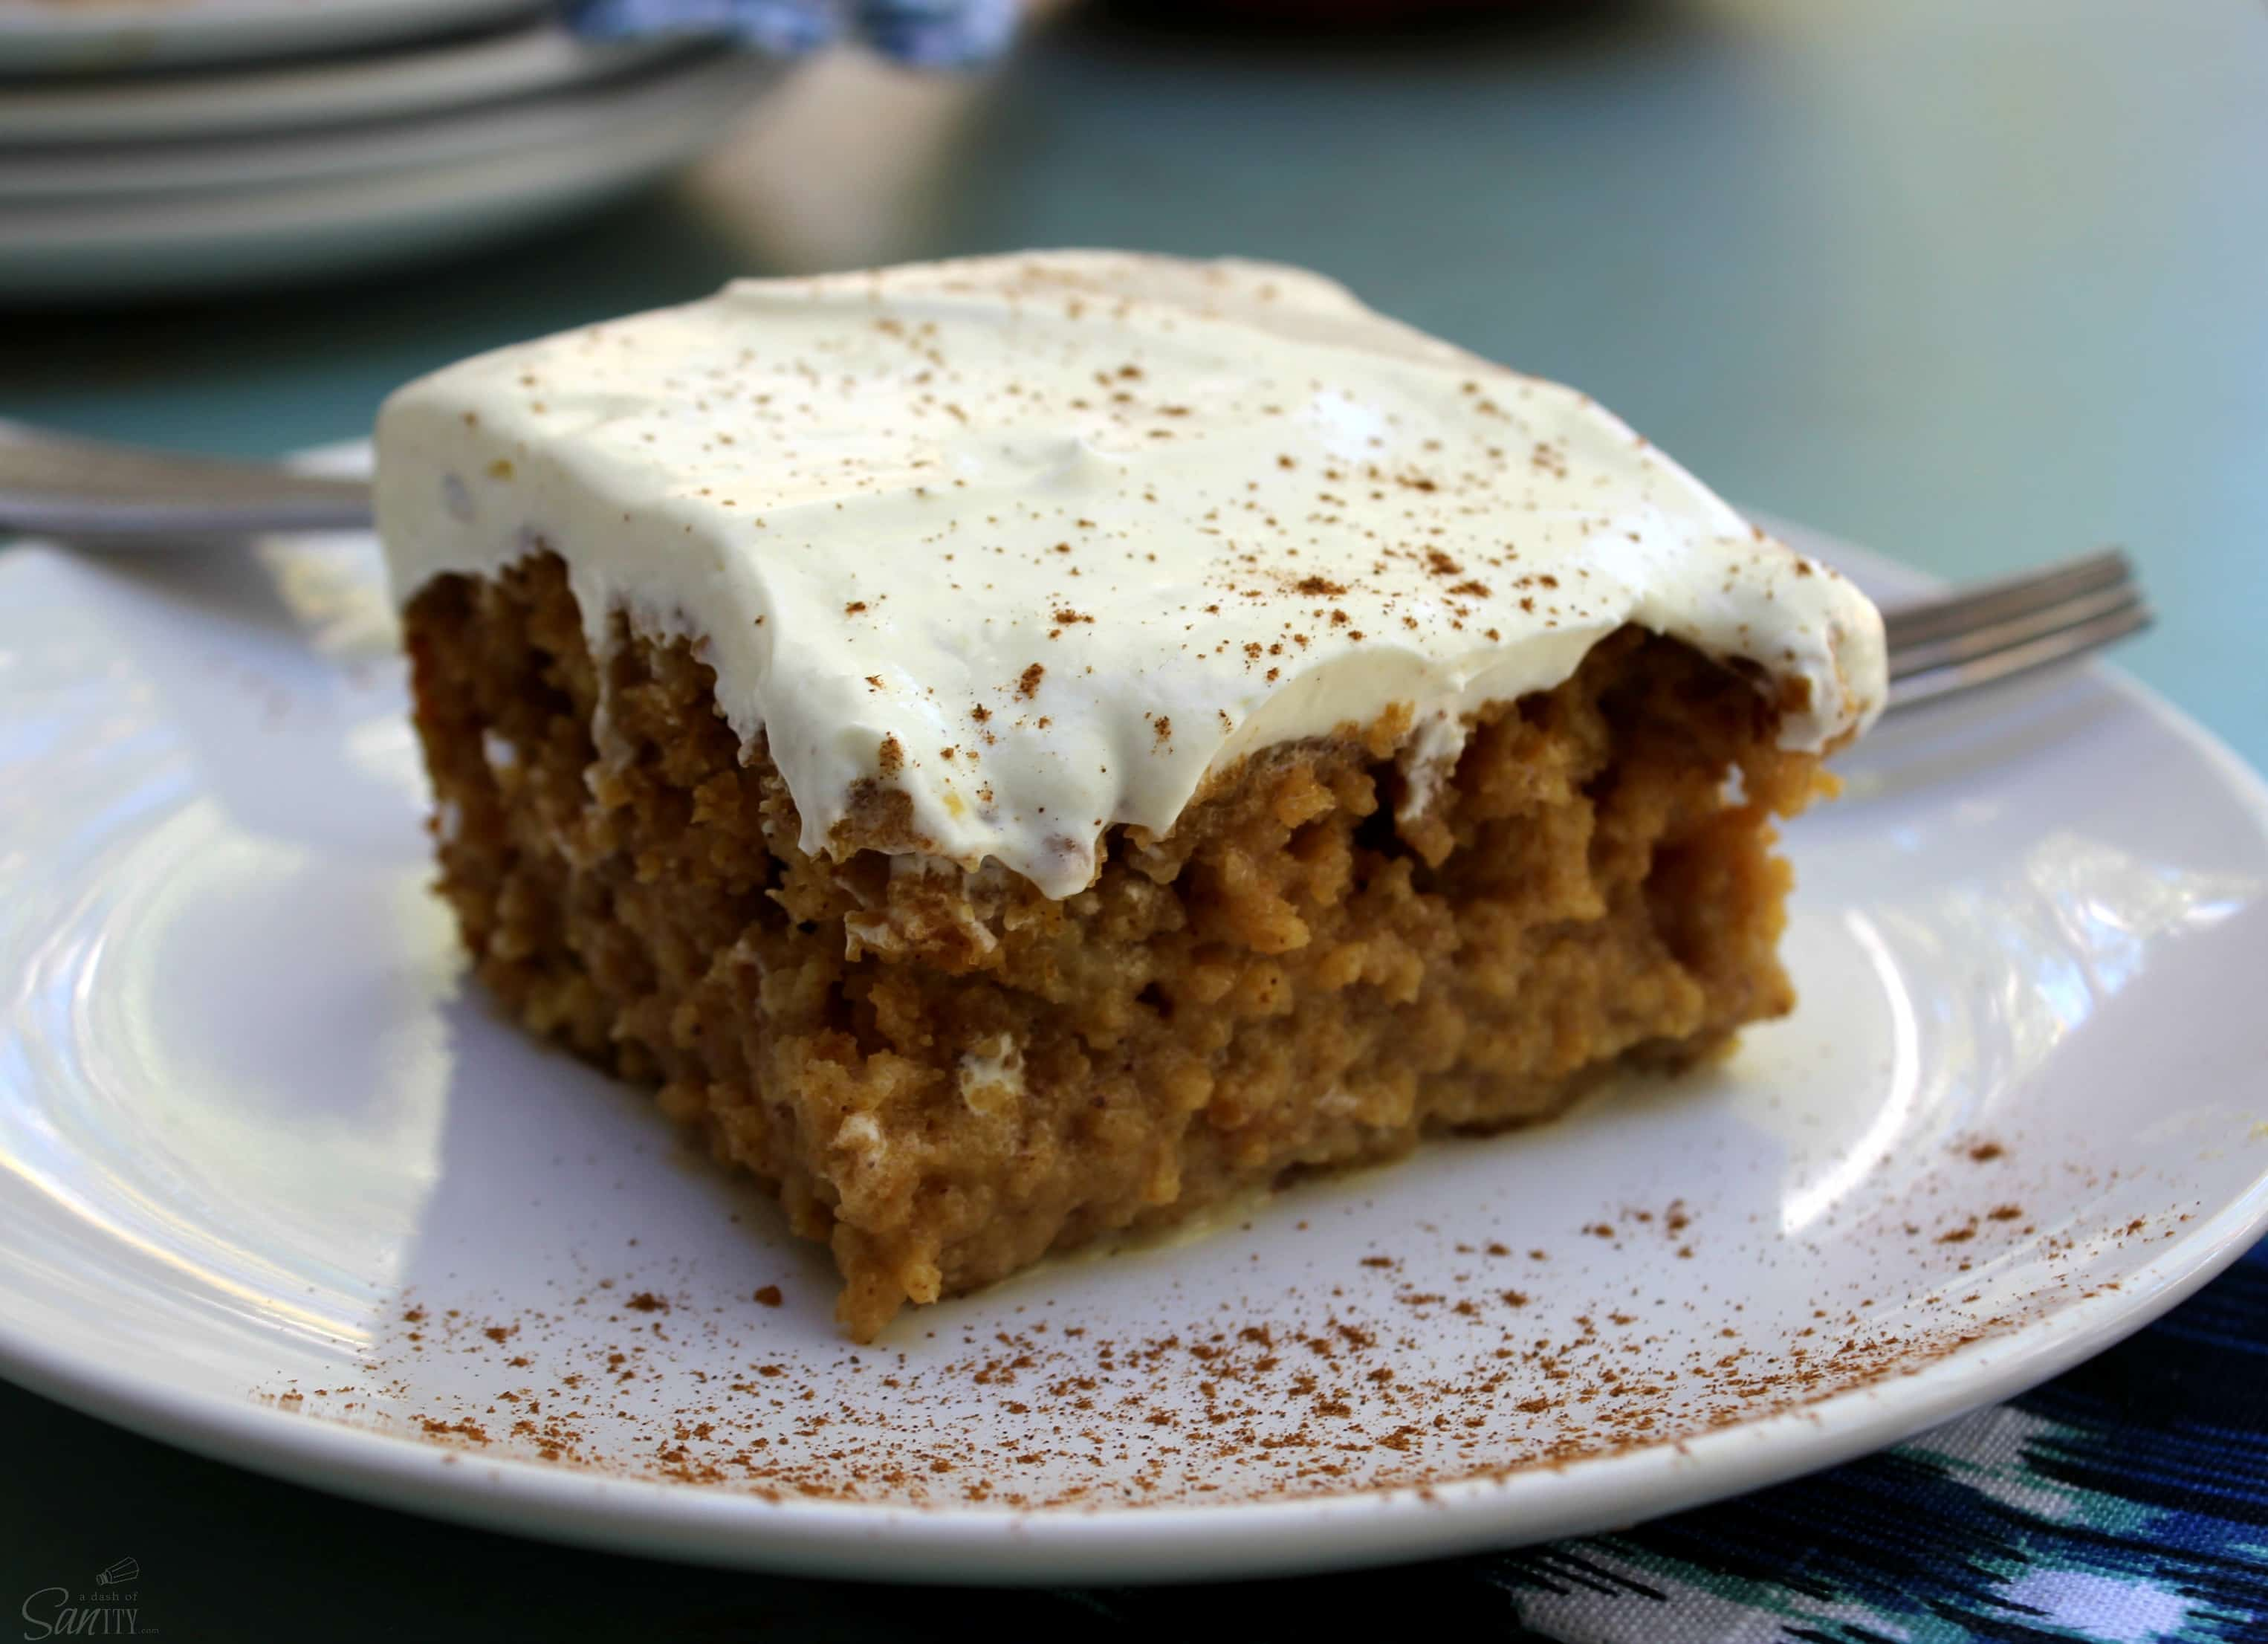 This Pumpkin Eggnog Tres Leches is an amazingly delicious pumpkin cake soaked in an eggnog milk custard, perfect for any holiday occasion.